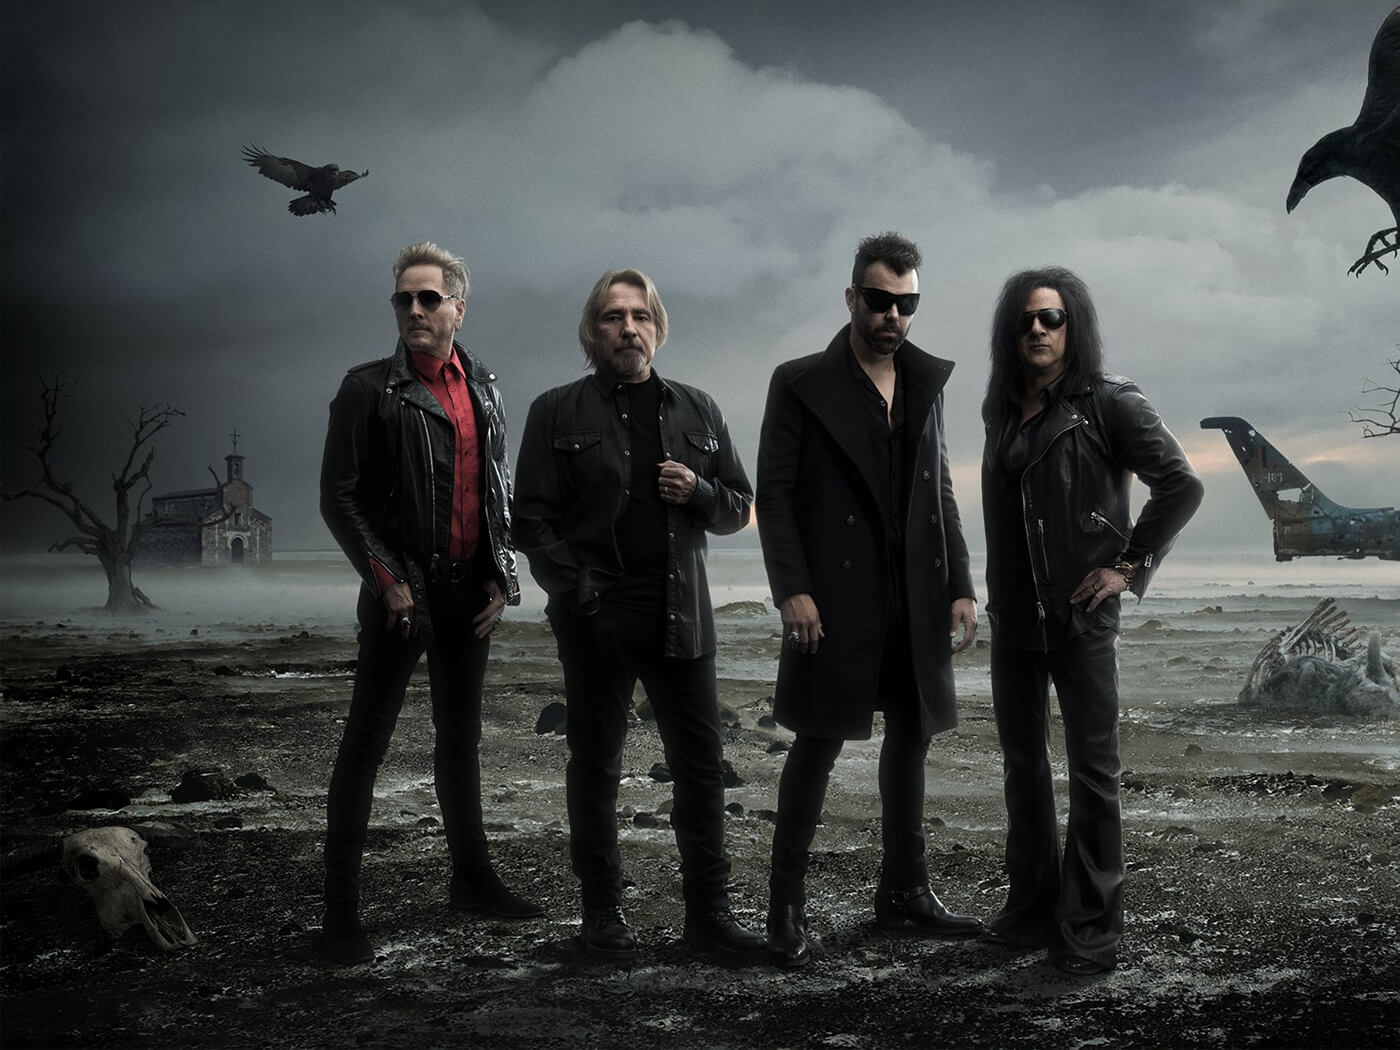 Geezer Butler's Deadland Ritual release first single, Down in Flames